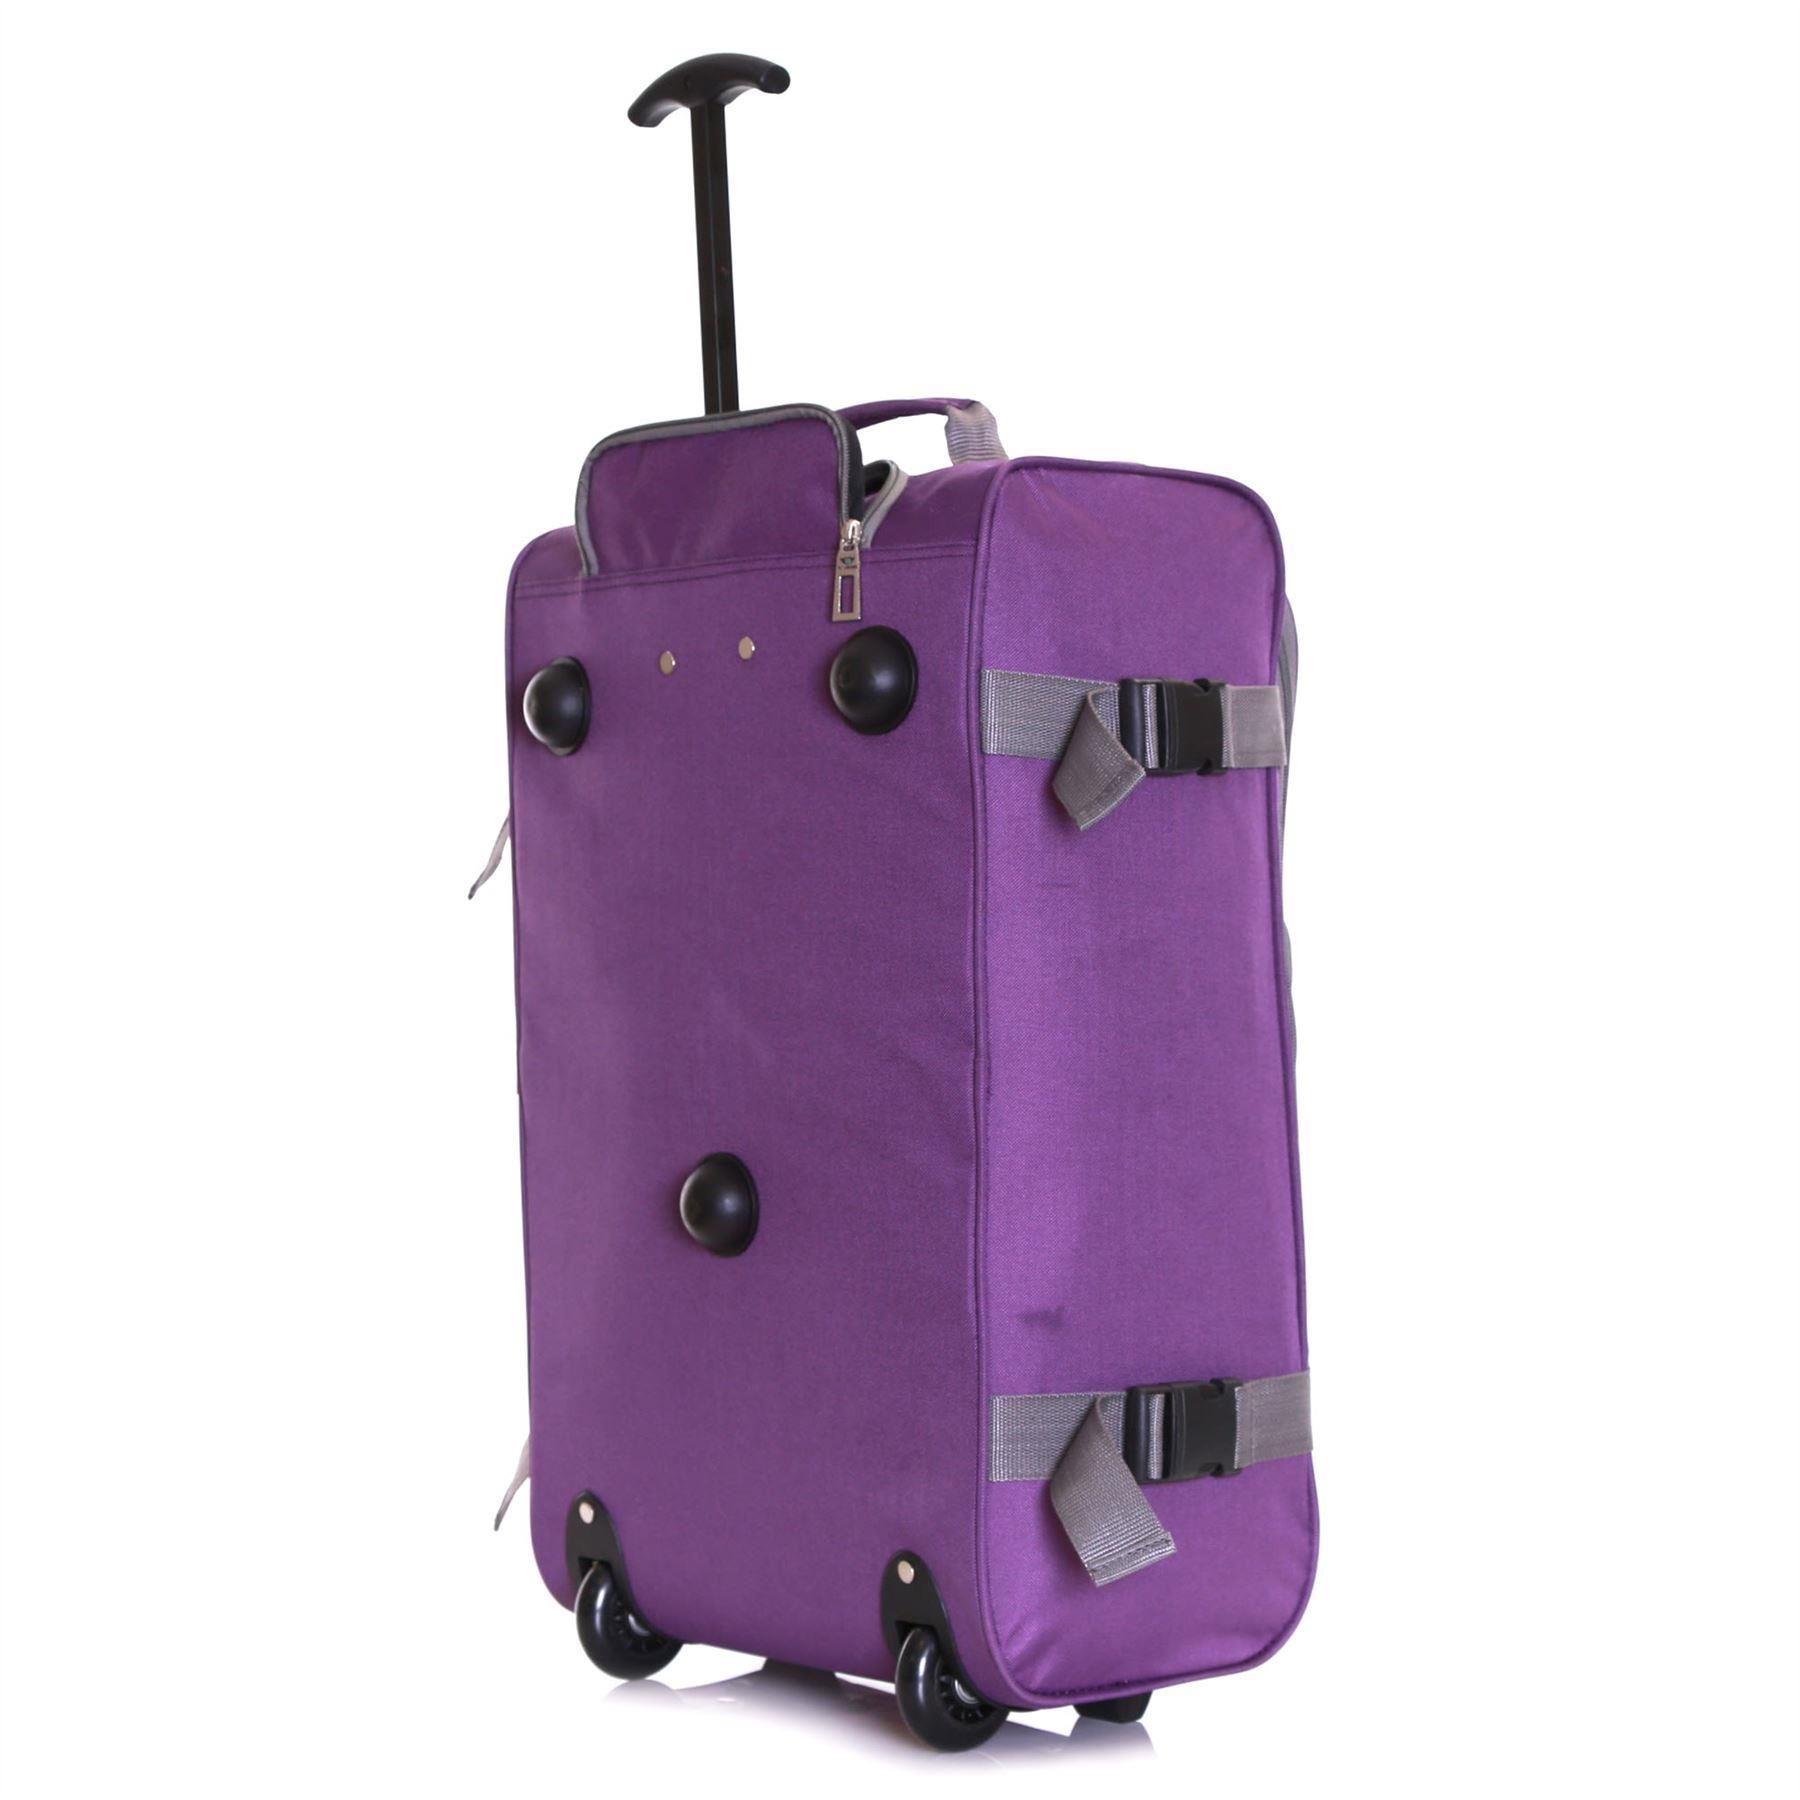 Ryanair-Easyjet-Set-of-2-Cabin-Approved-Hand-Trolley-Suitcases-Luggage-Case-Bags thumbnail 27